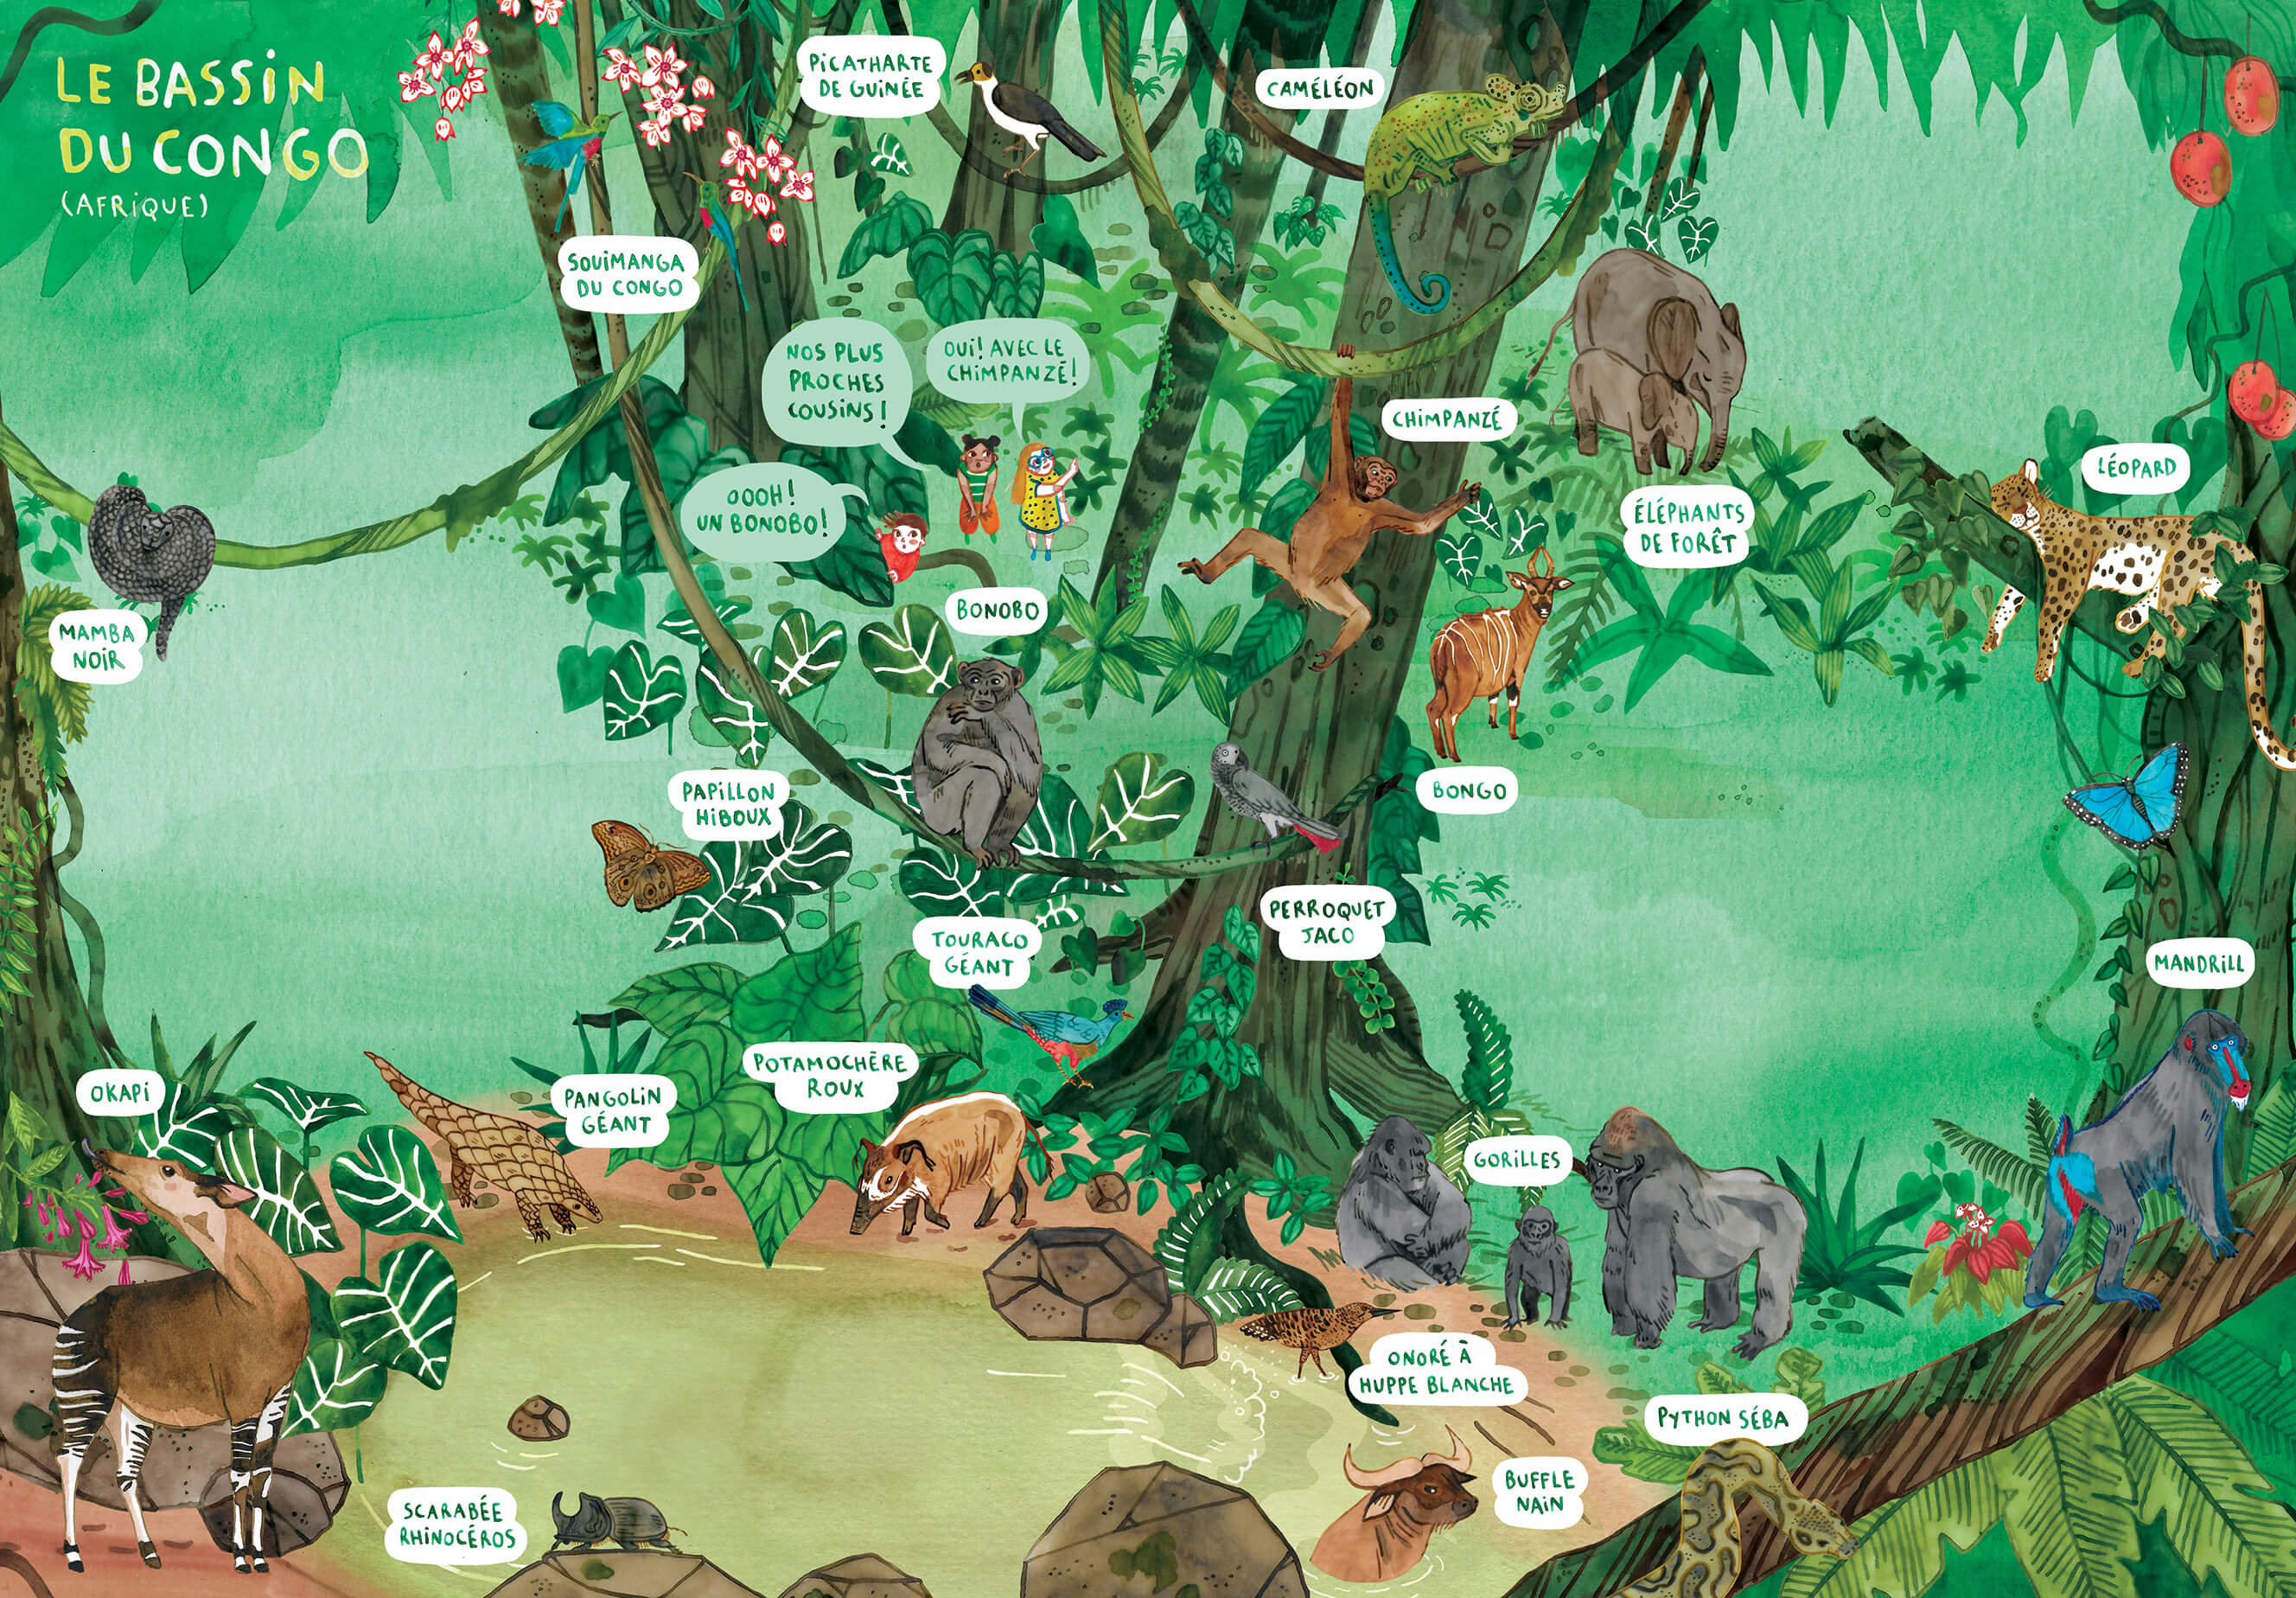 Kid's book illustration of the Congo rainforest